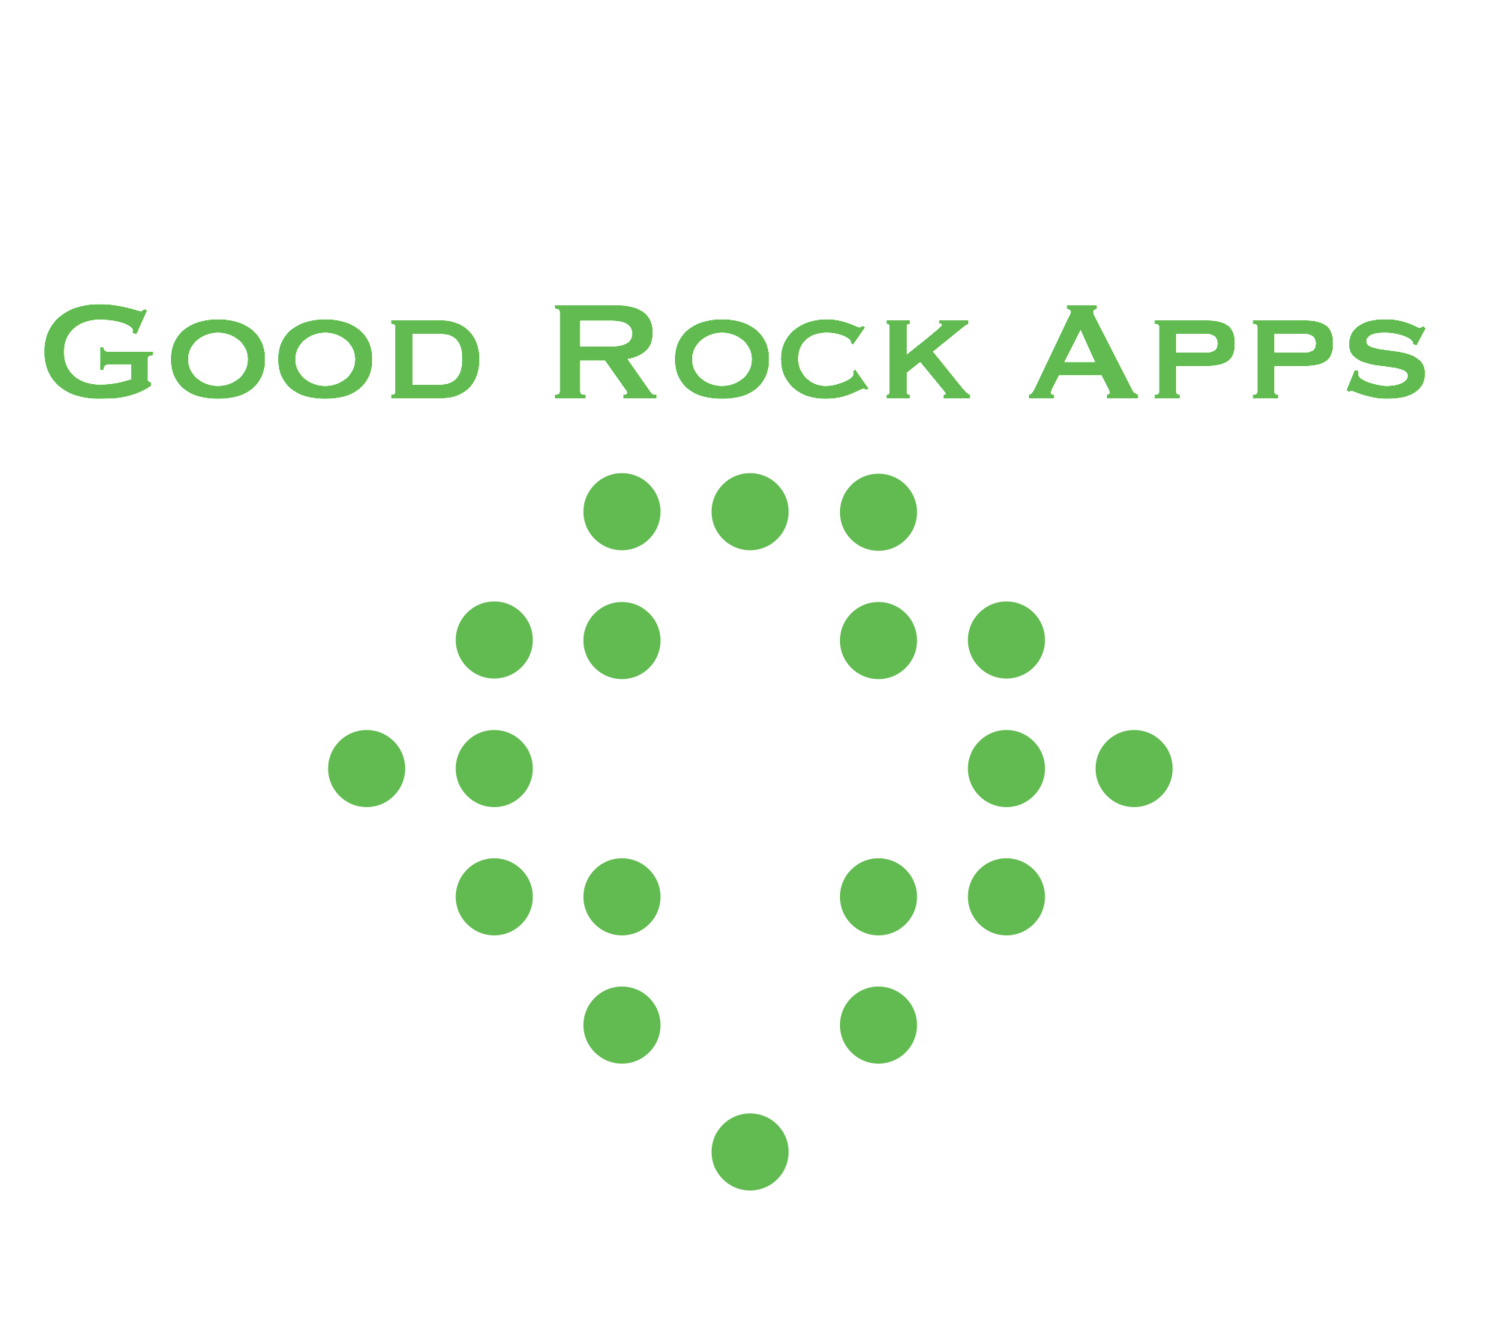 Good Rock Apps